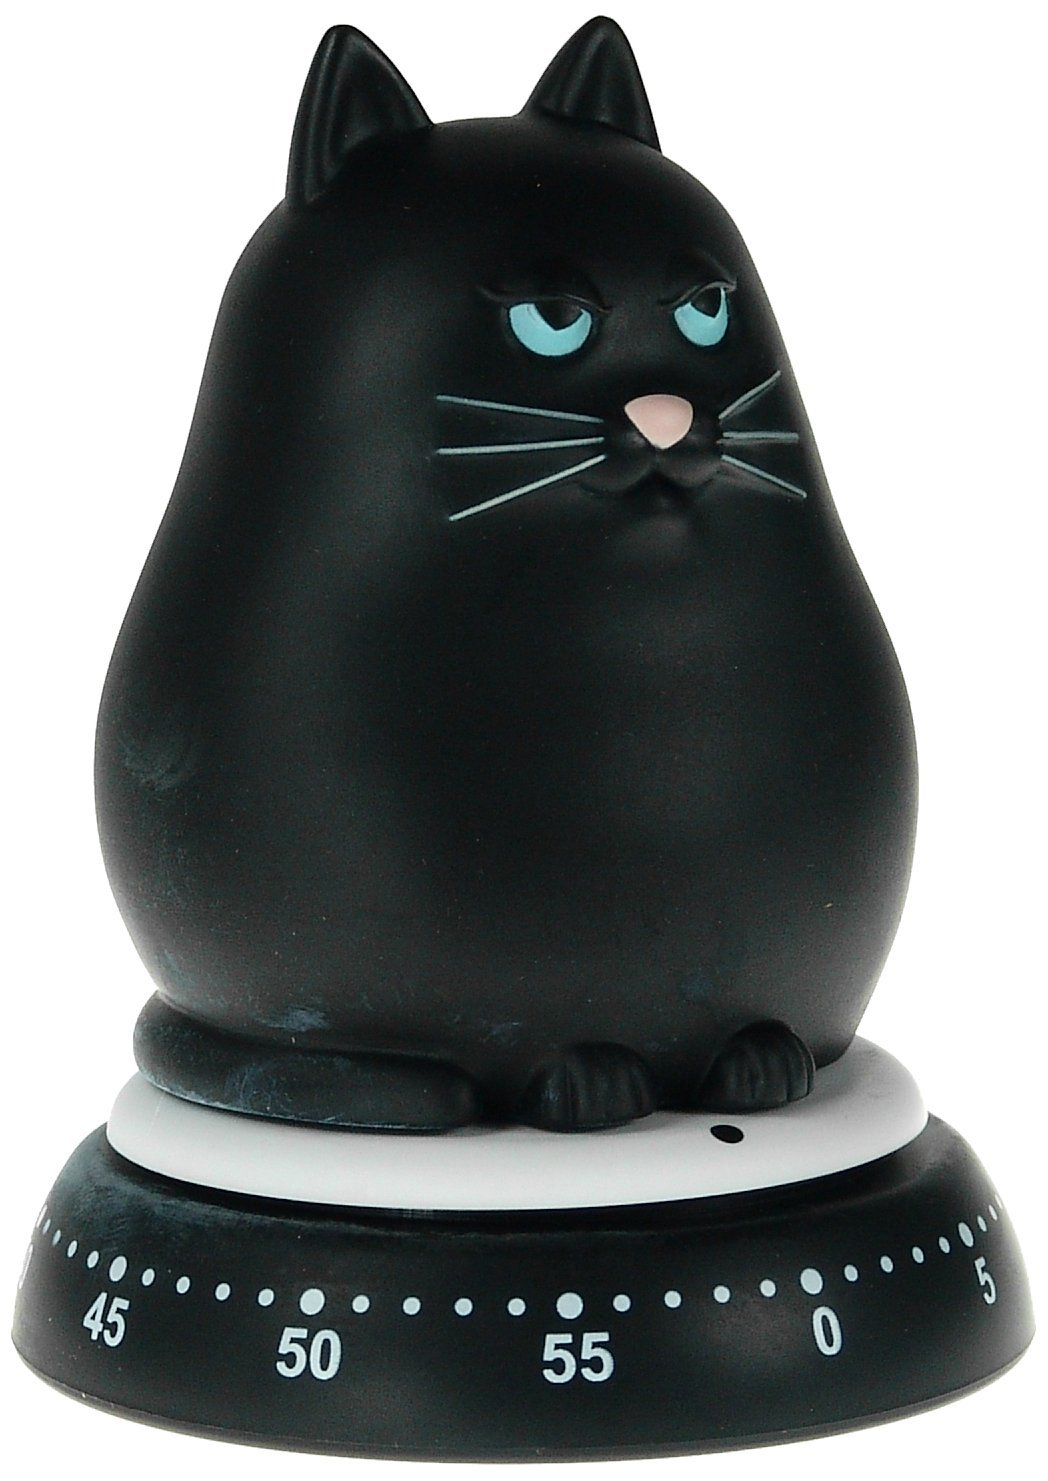 Cat Kitchen Accessories Make Cooking Fun The Conscious Cat